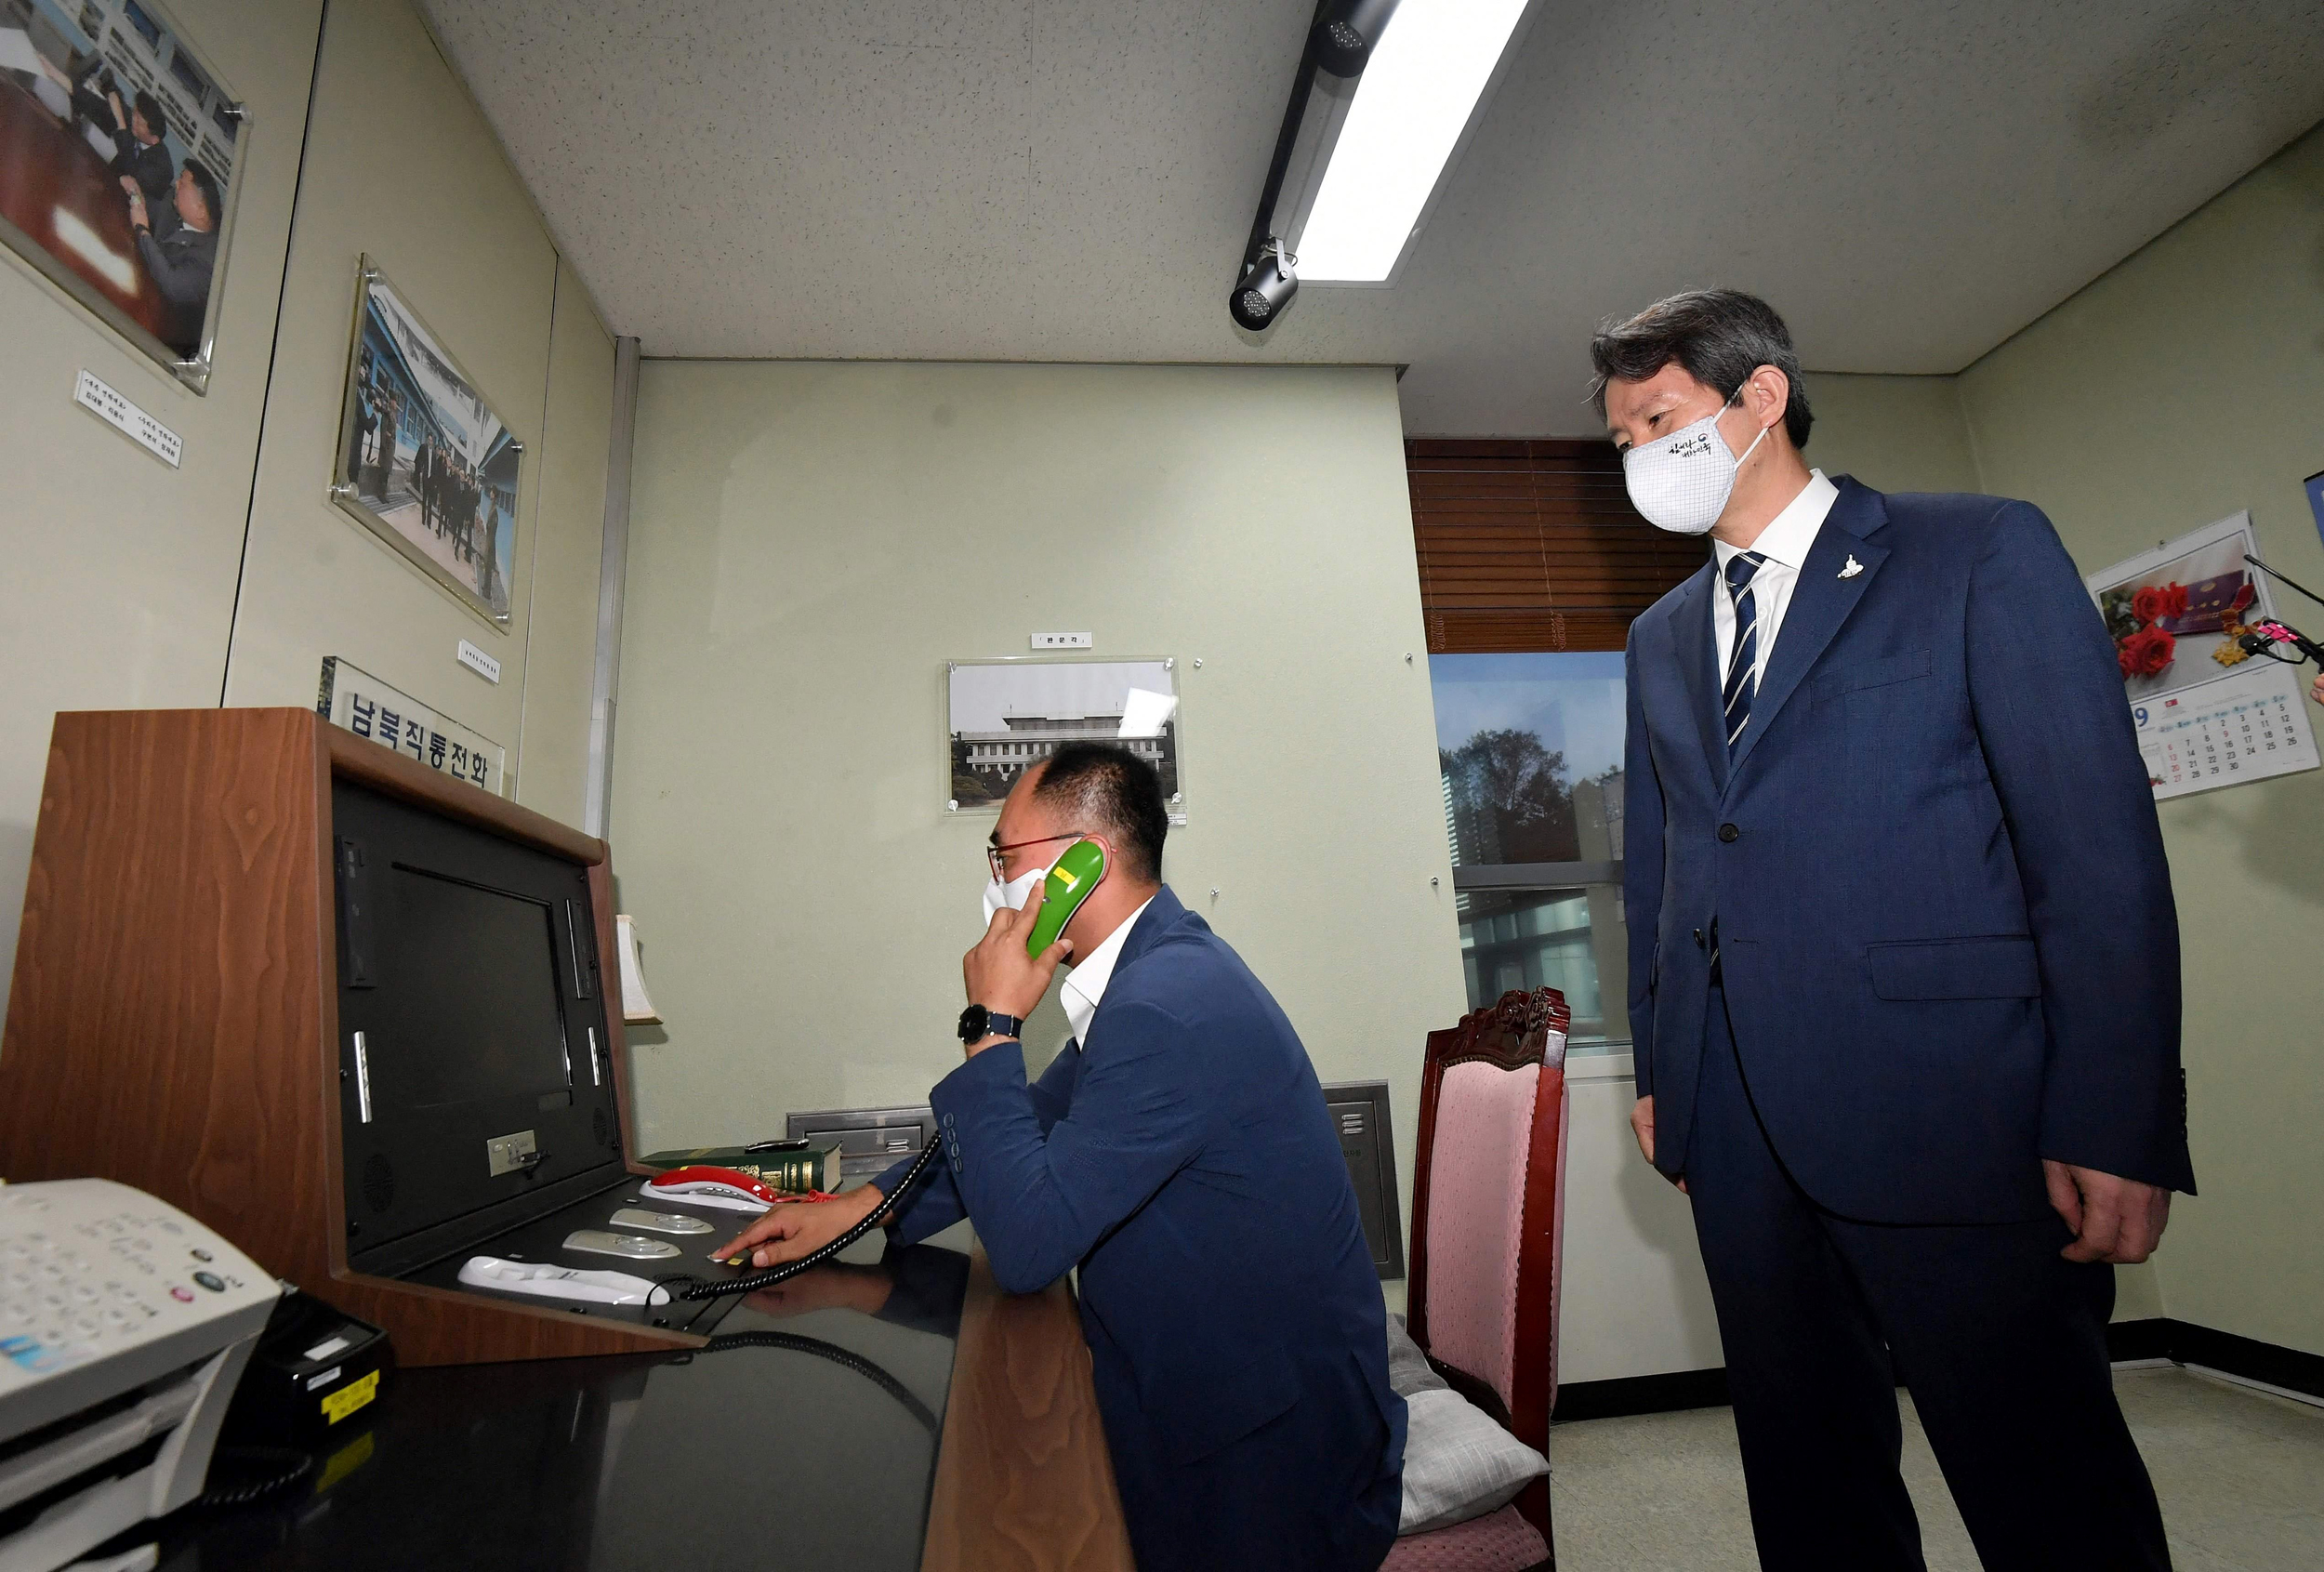 The two Koreas restore communication channels, agree to improve ties